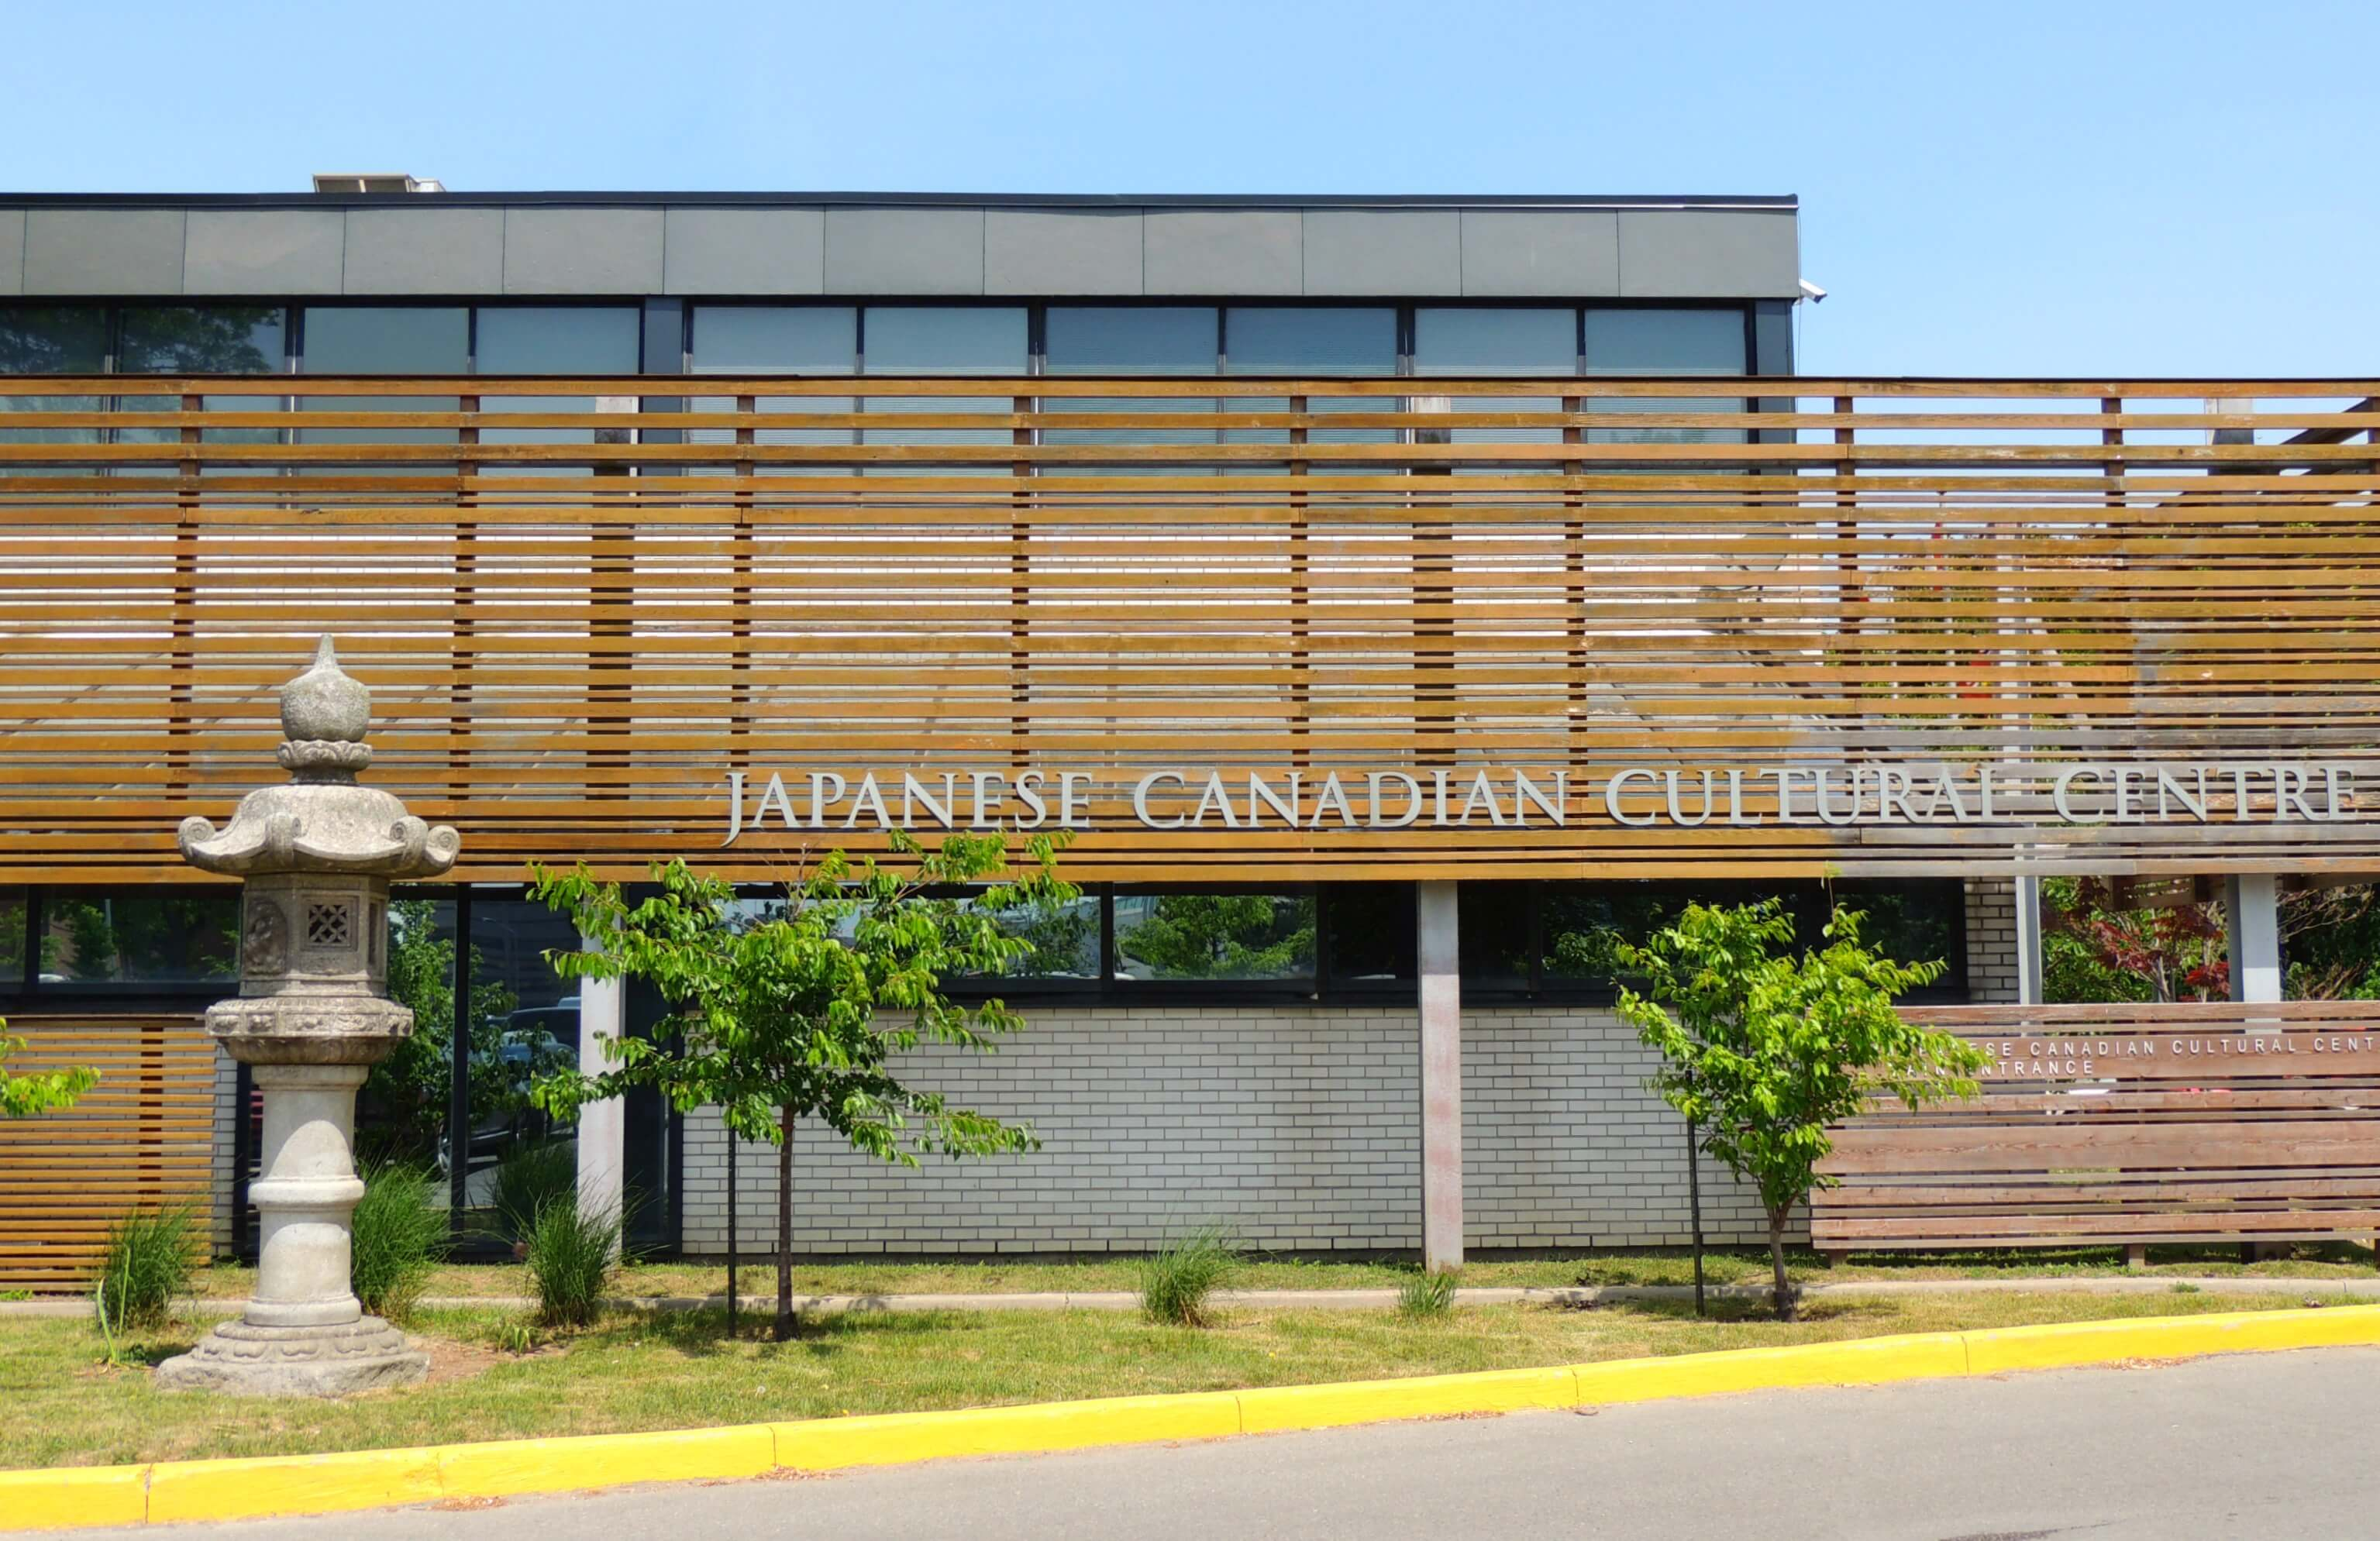 Exterior of the Japanese Canadian Culture Center in Toronto with a Japanese stone statue at the front of the building.